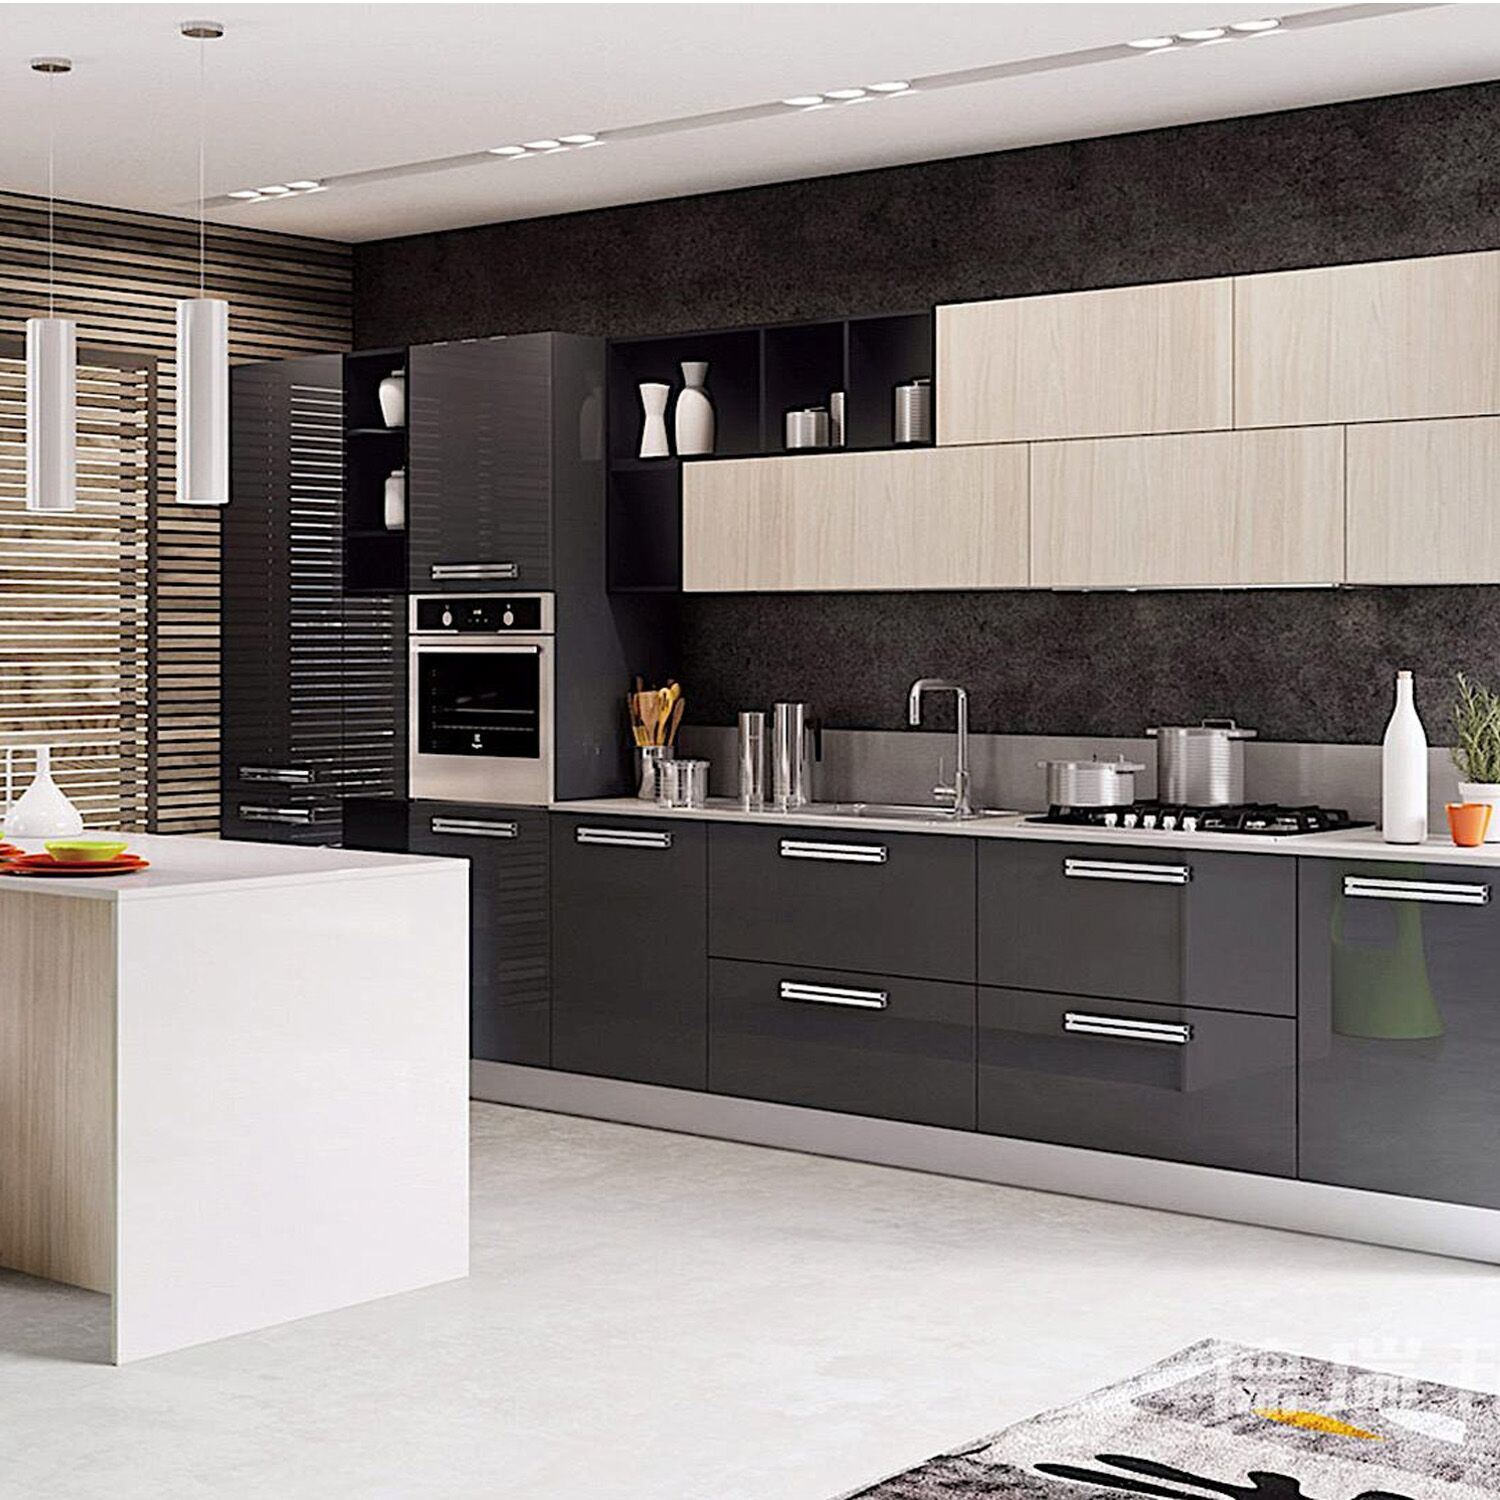 New Home Designs Latest Modern Home Kitchen Cabinet: China Modern Simple Wood Modular Kitchen Cabinet Indoor